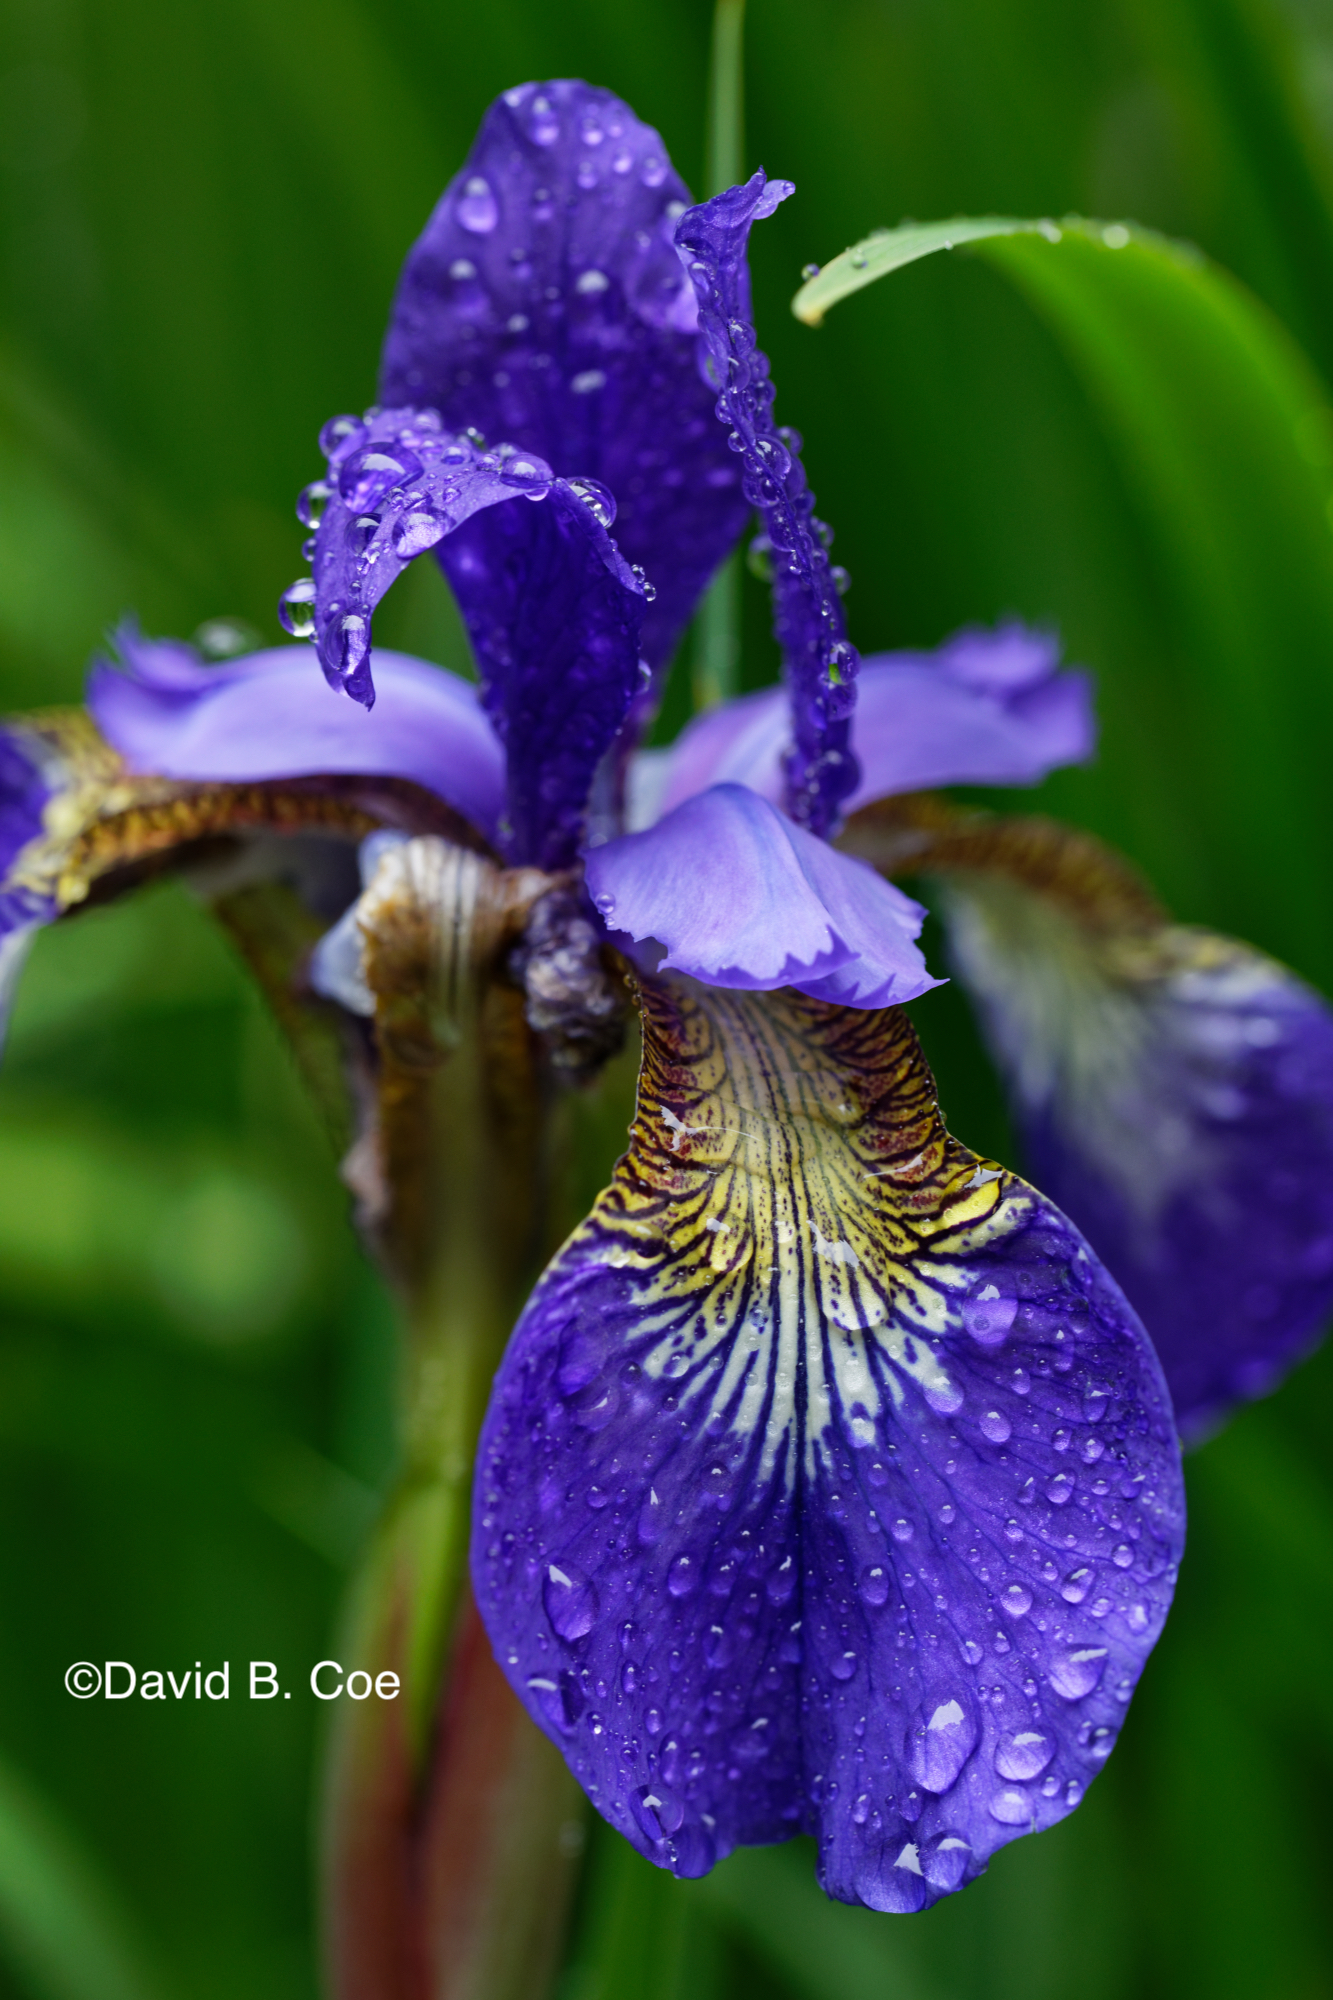 Japanese Iris IV, by David B. Coe